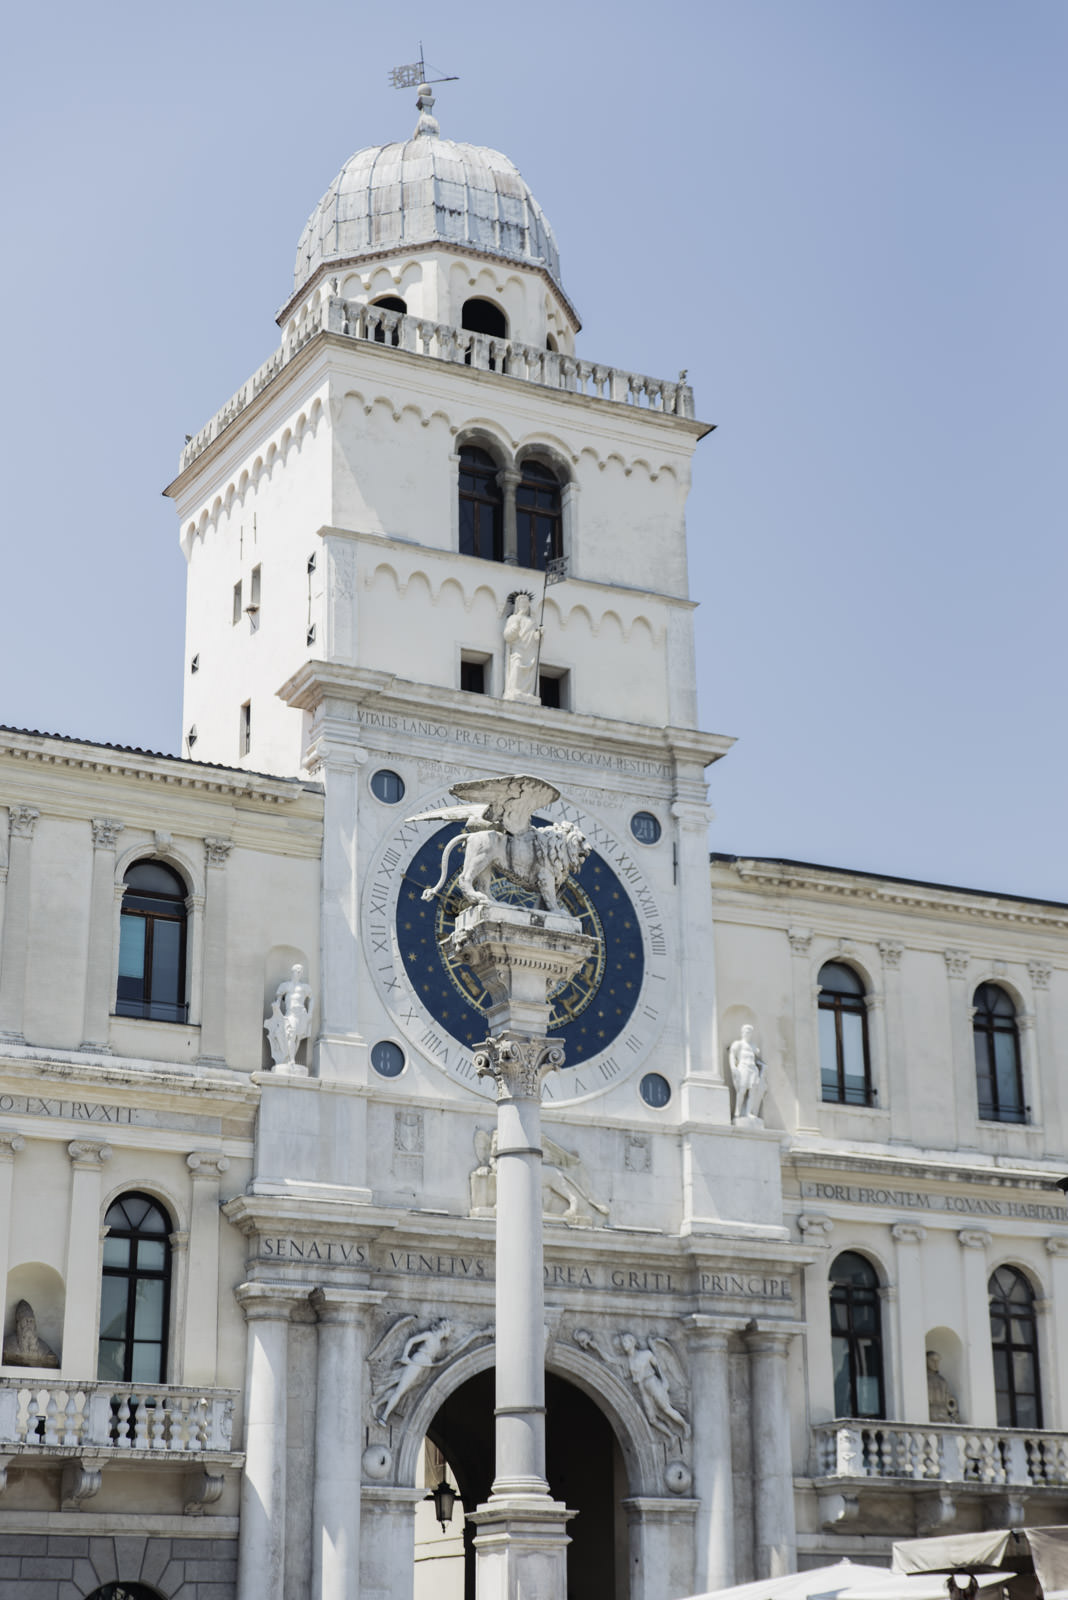 Blog-Mode-And-The-City-Lifestyle-Voyage-Italie-Trieste-Padoue-lac-Come-Verone-5